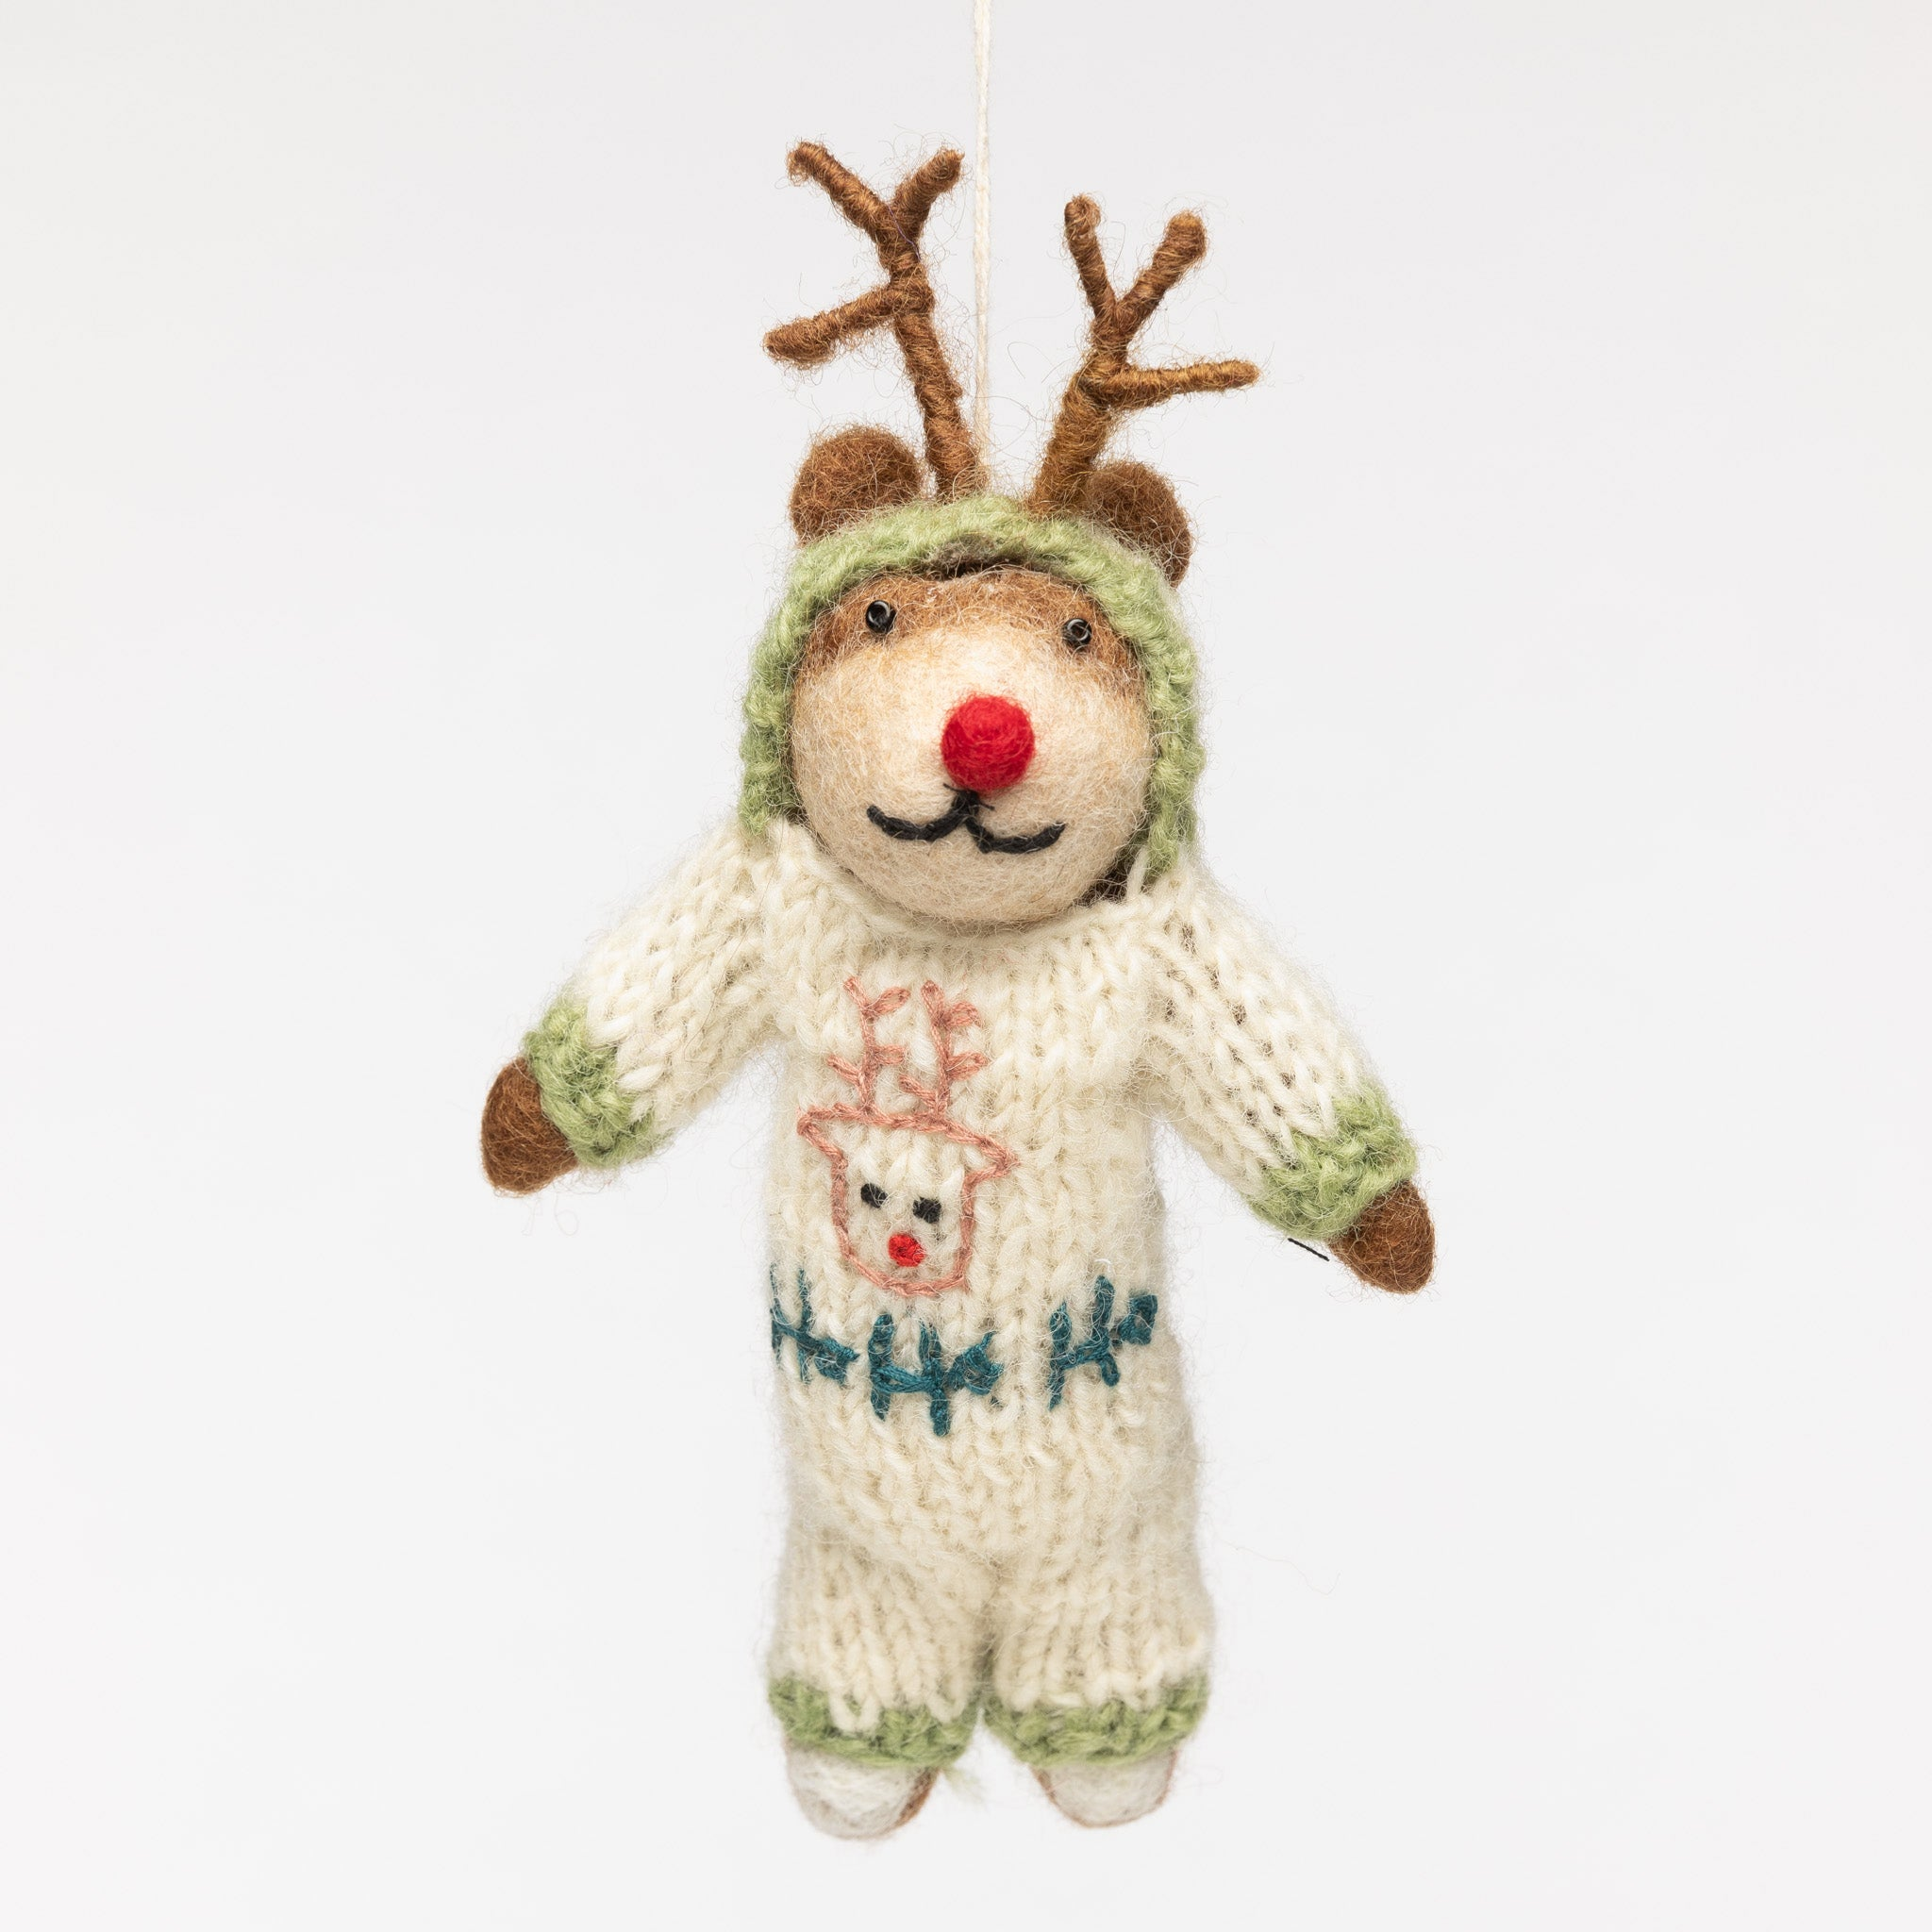 Felt Christmas Ornament - Reindeer in a Knitted Onsie